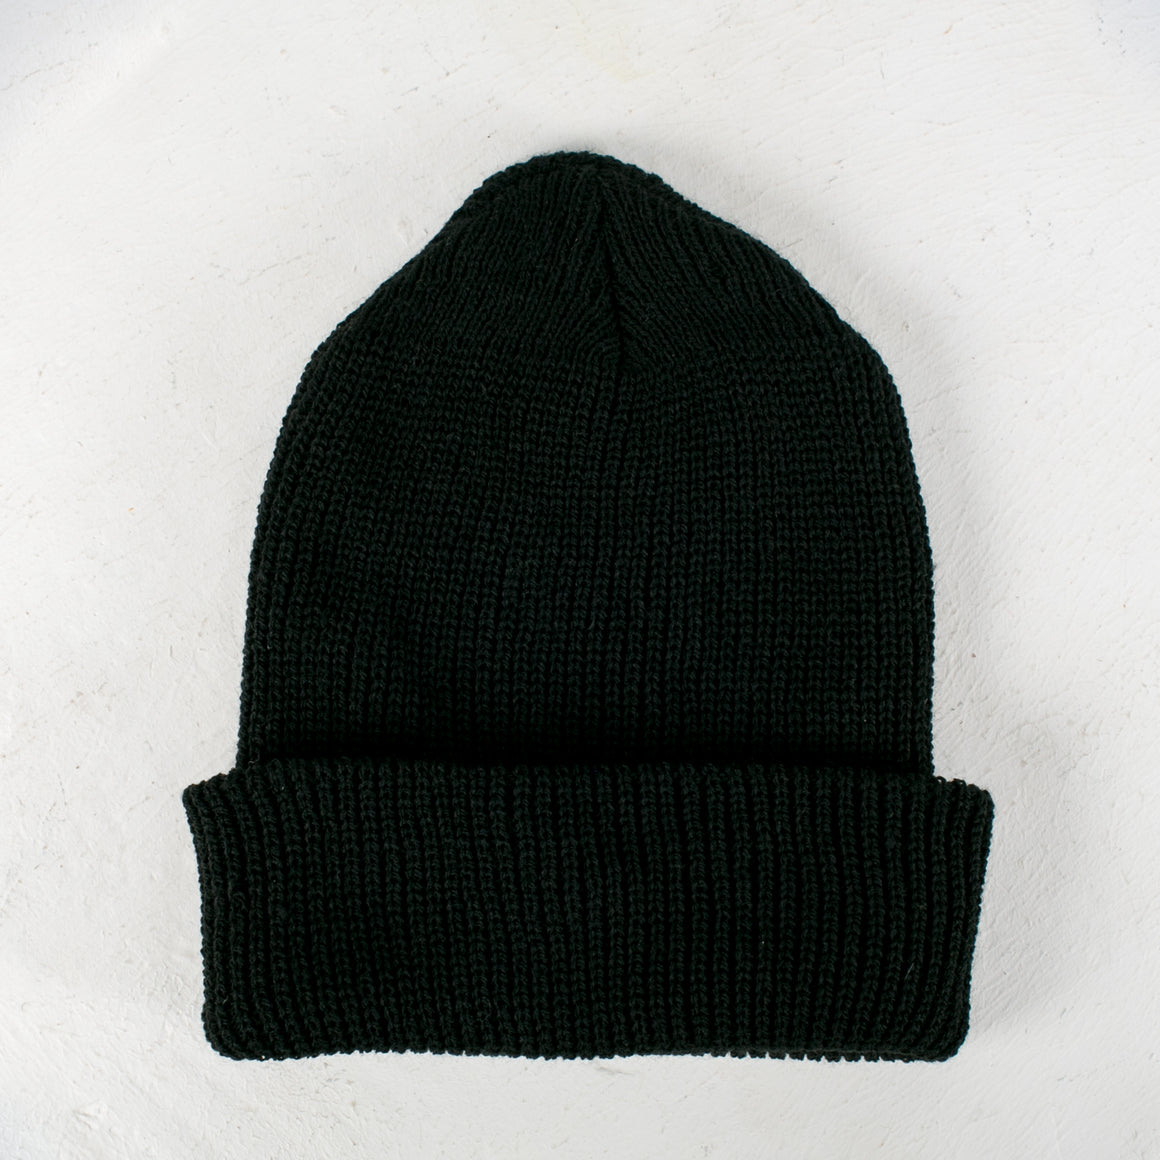 Vintage Beanie in Black